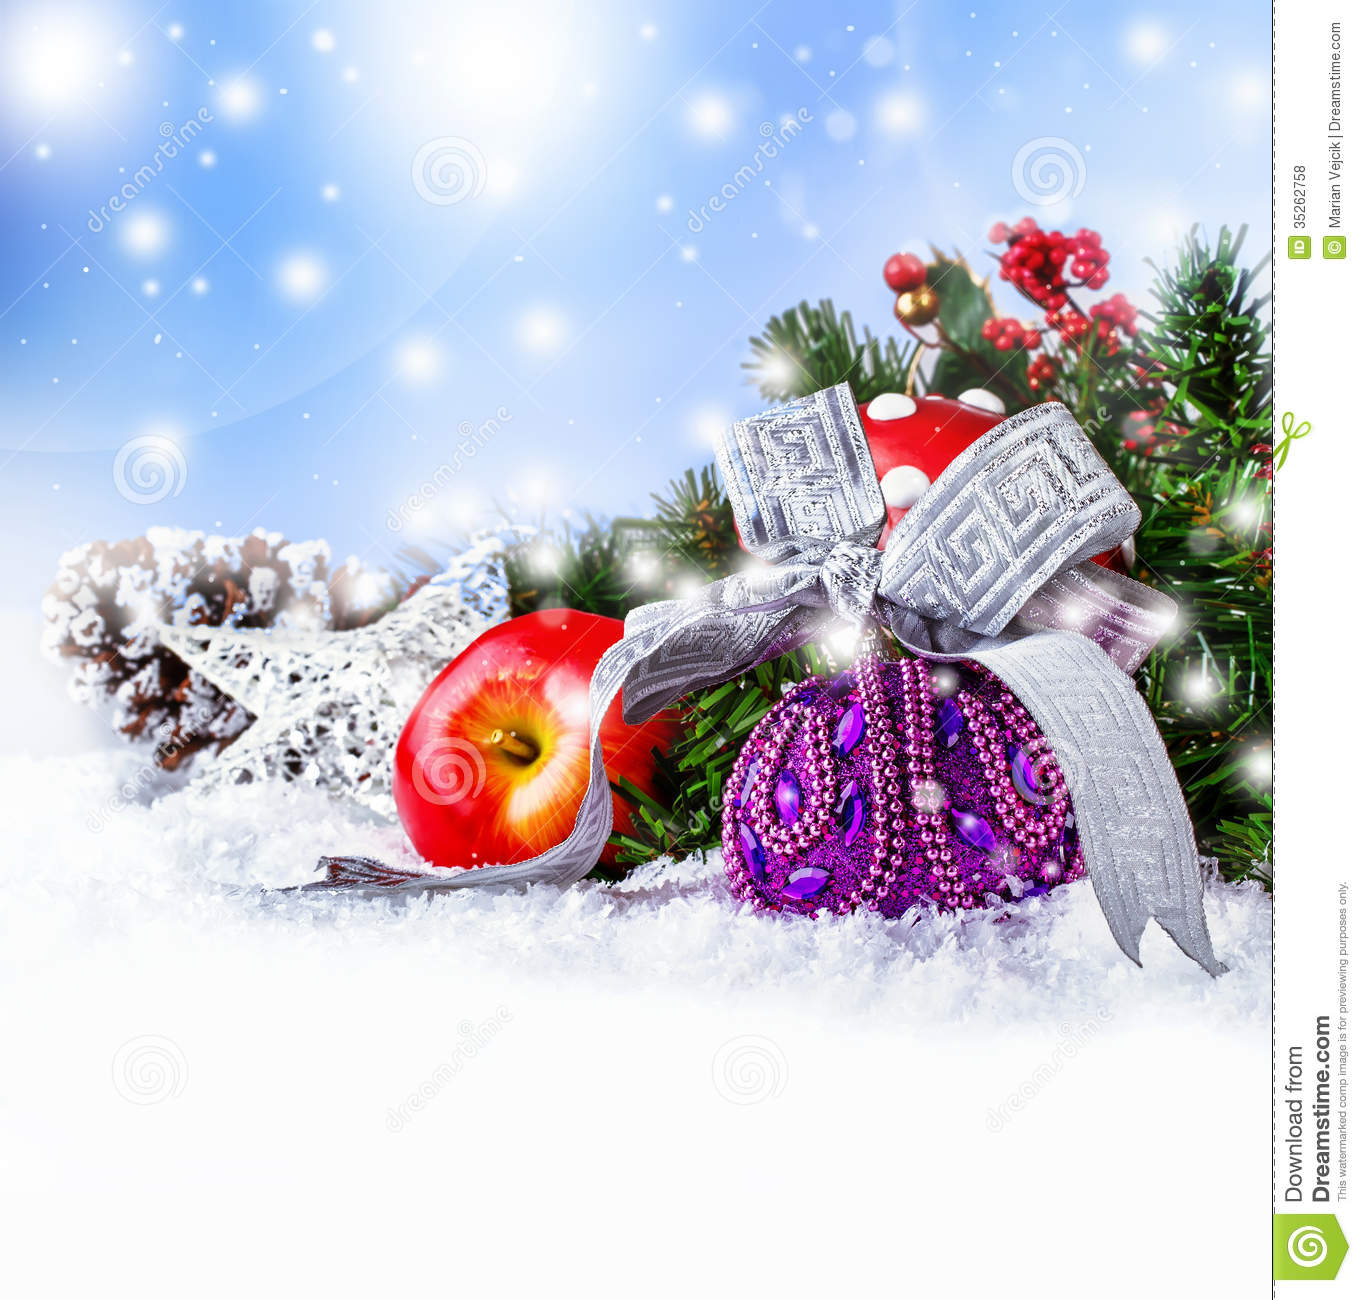 Christmas royalty free stock photos image 35262758 for Different xmas decorations